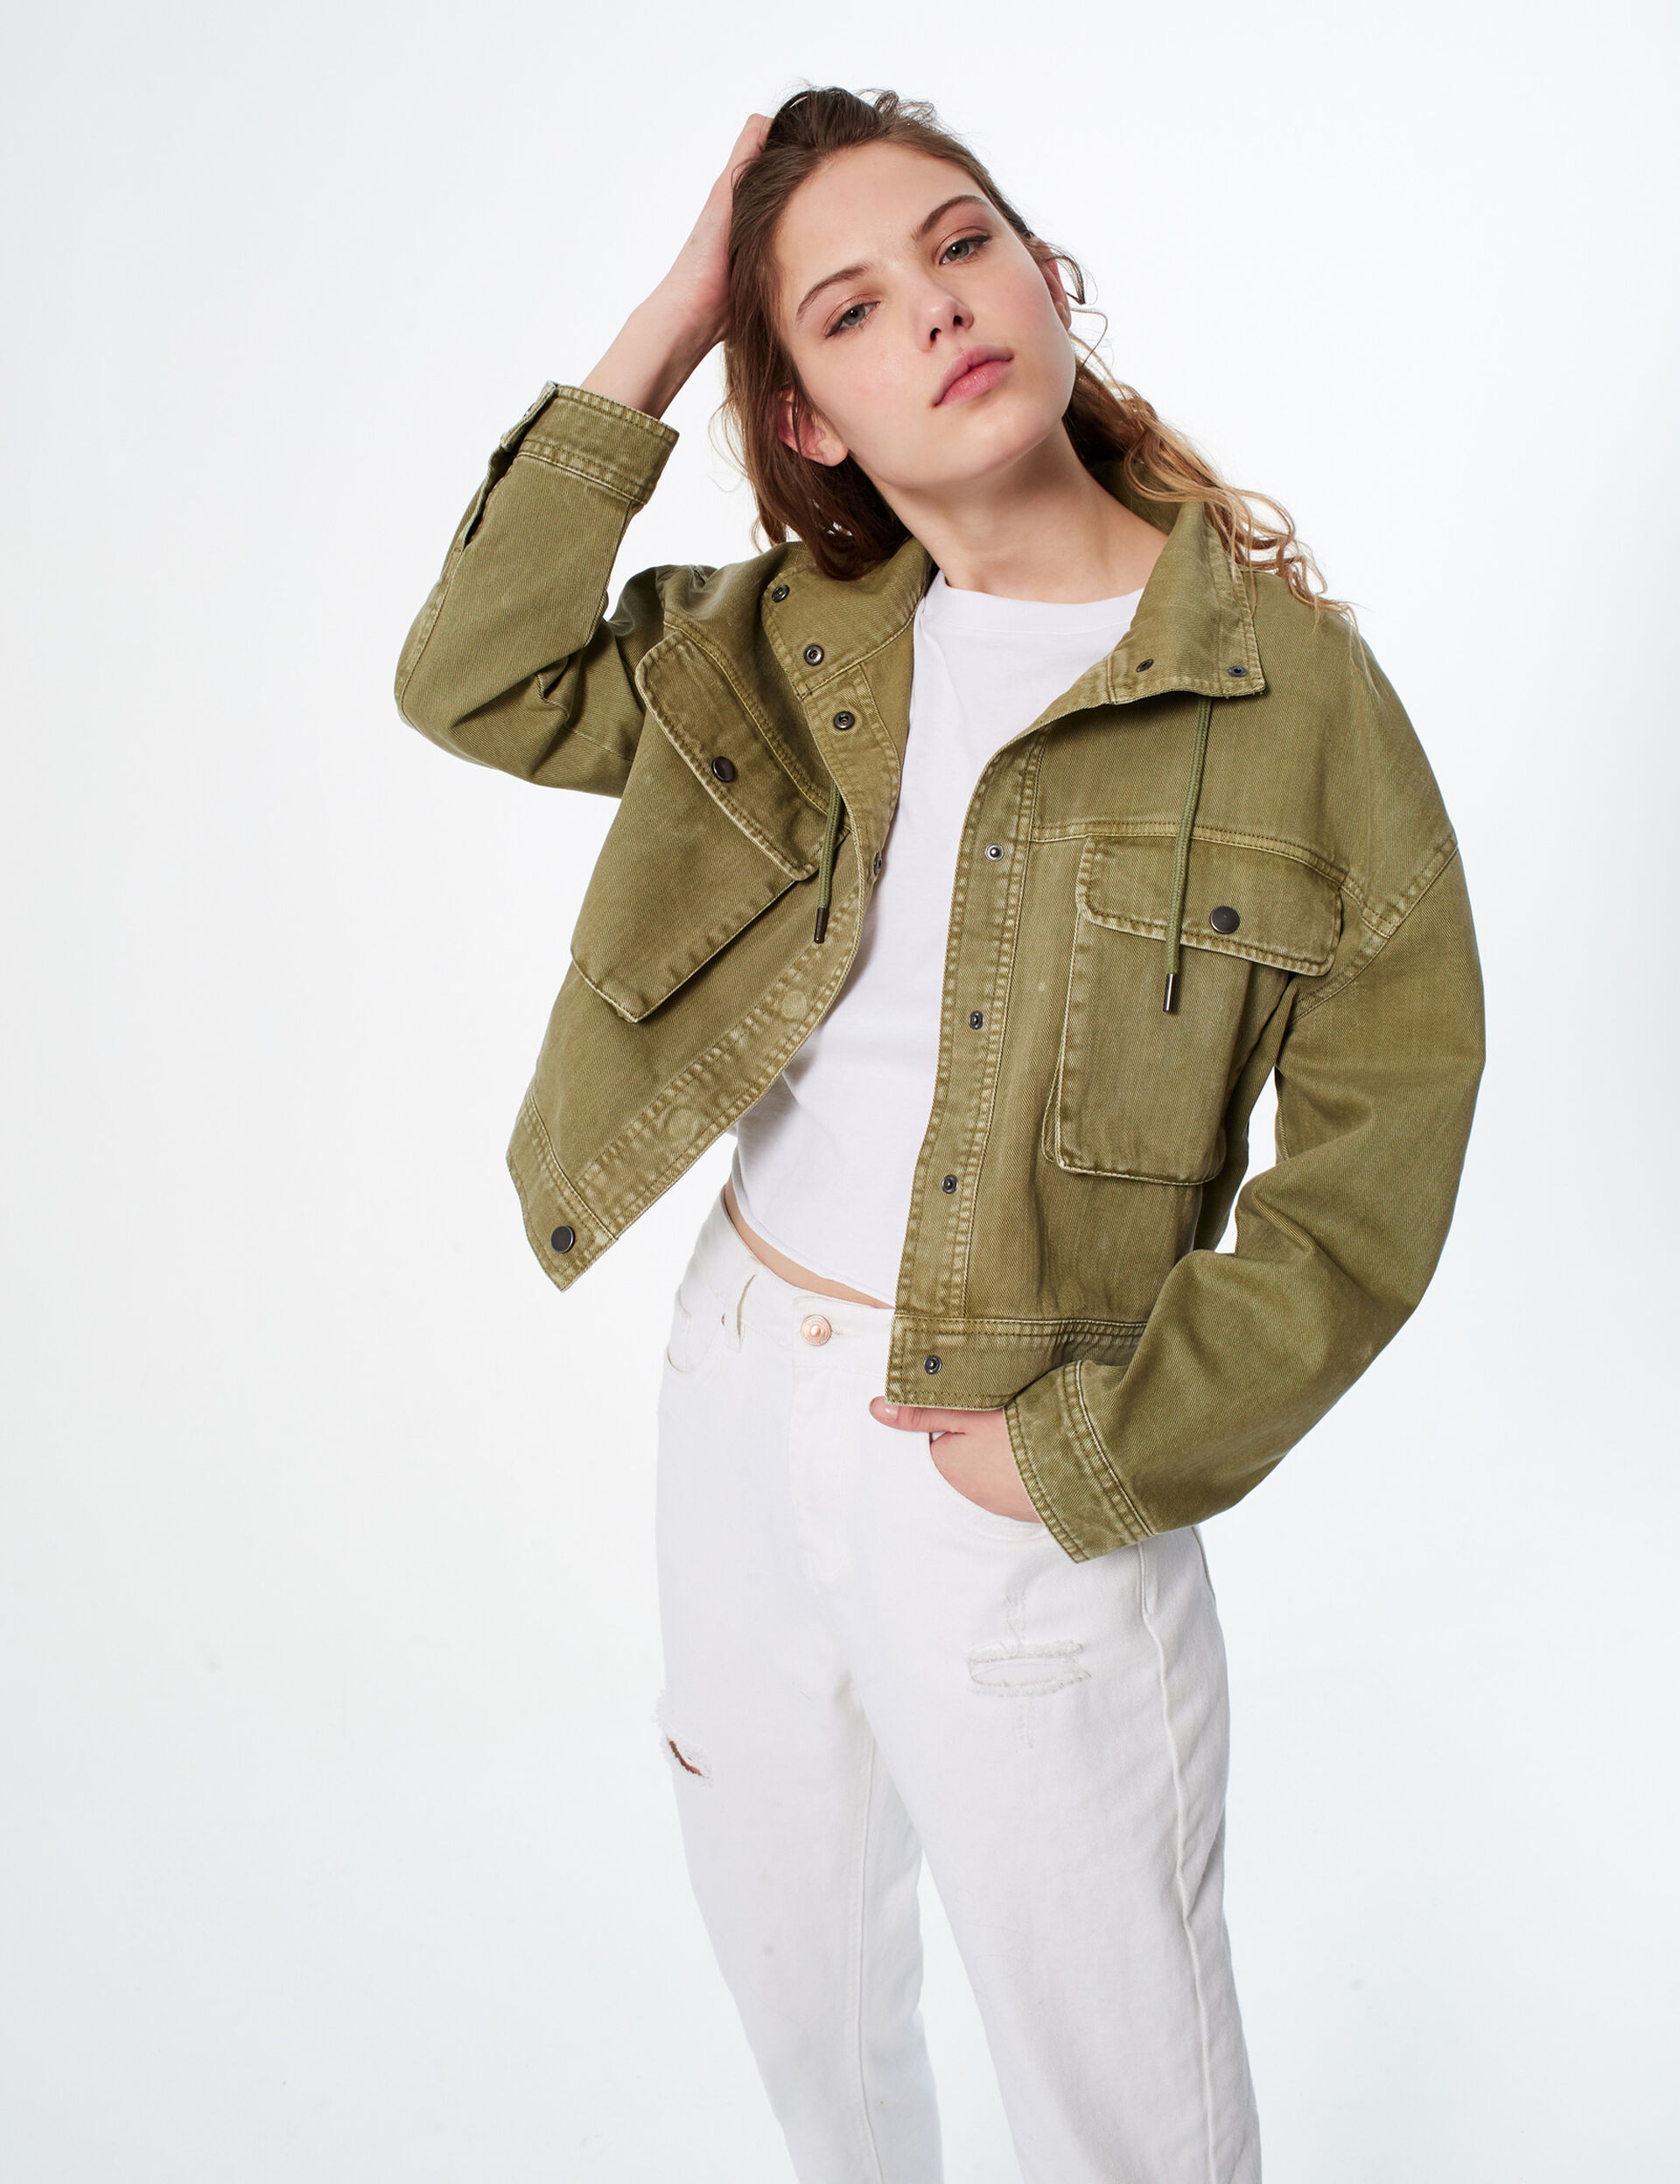 Cropped jacket with pockets